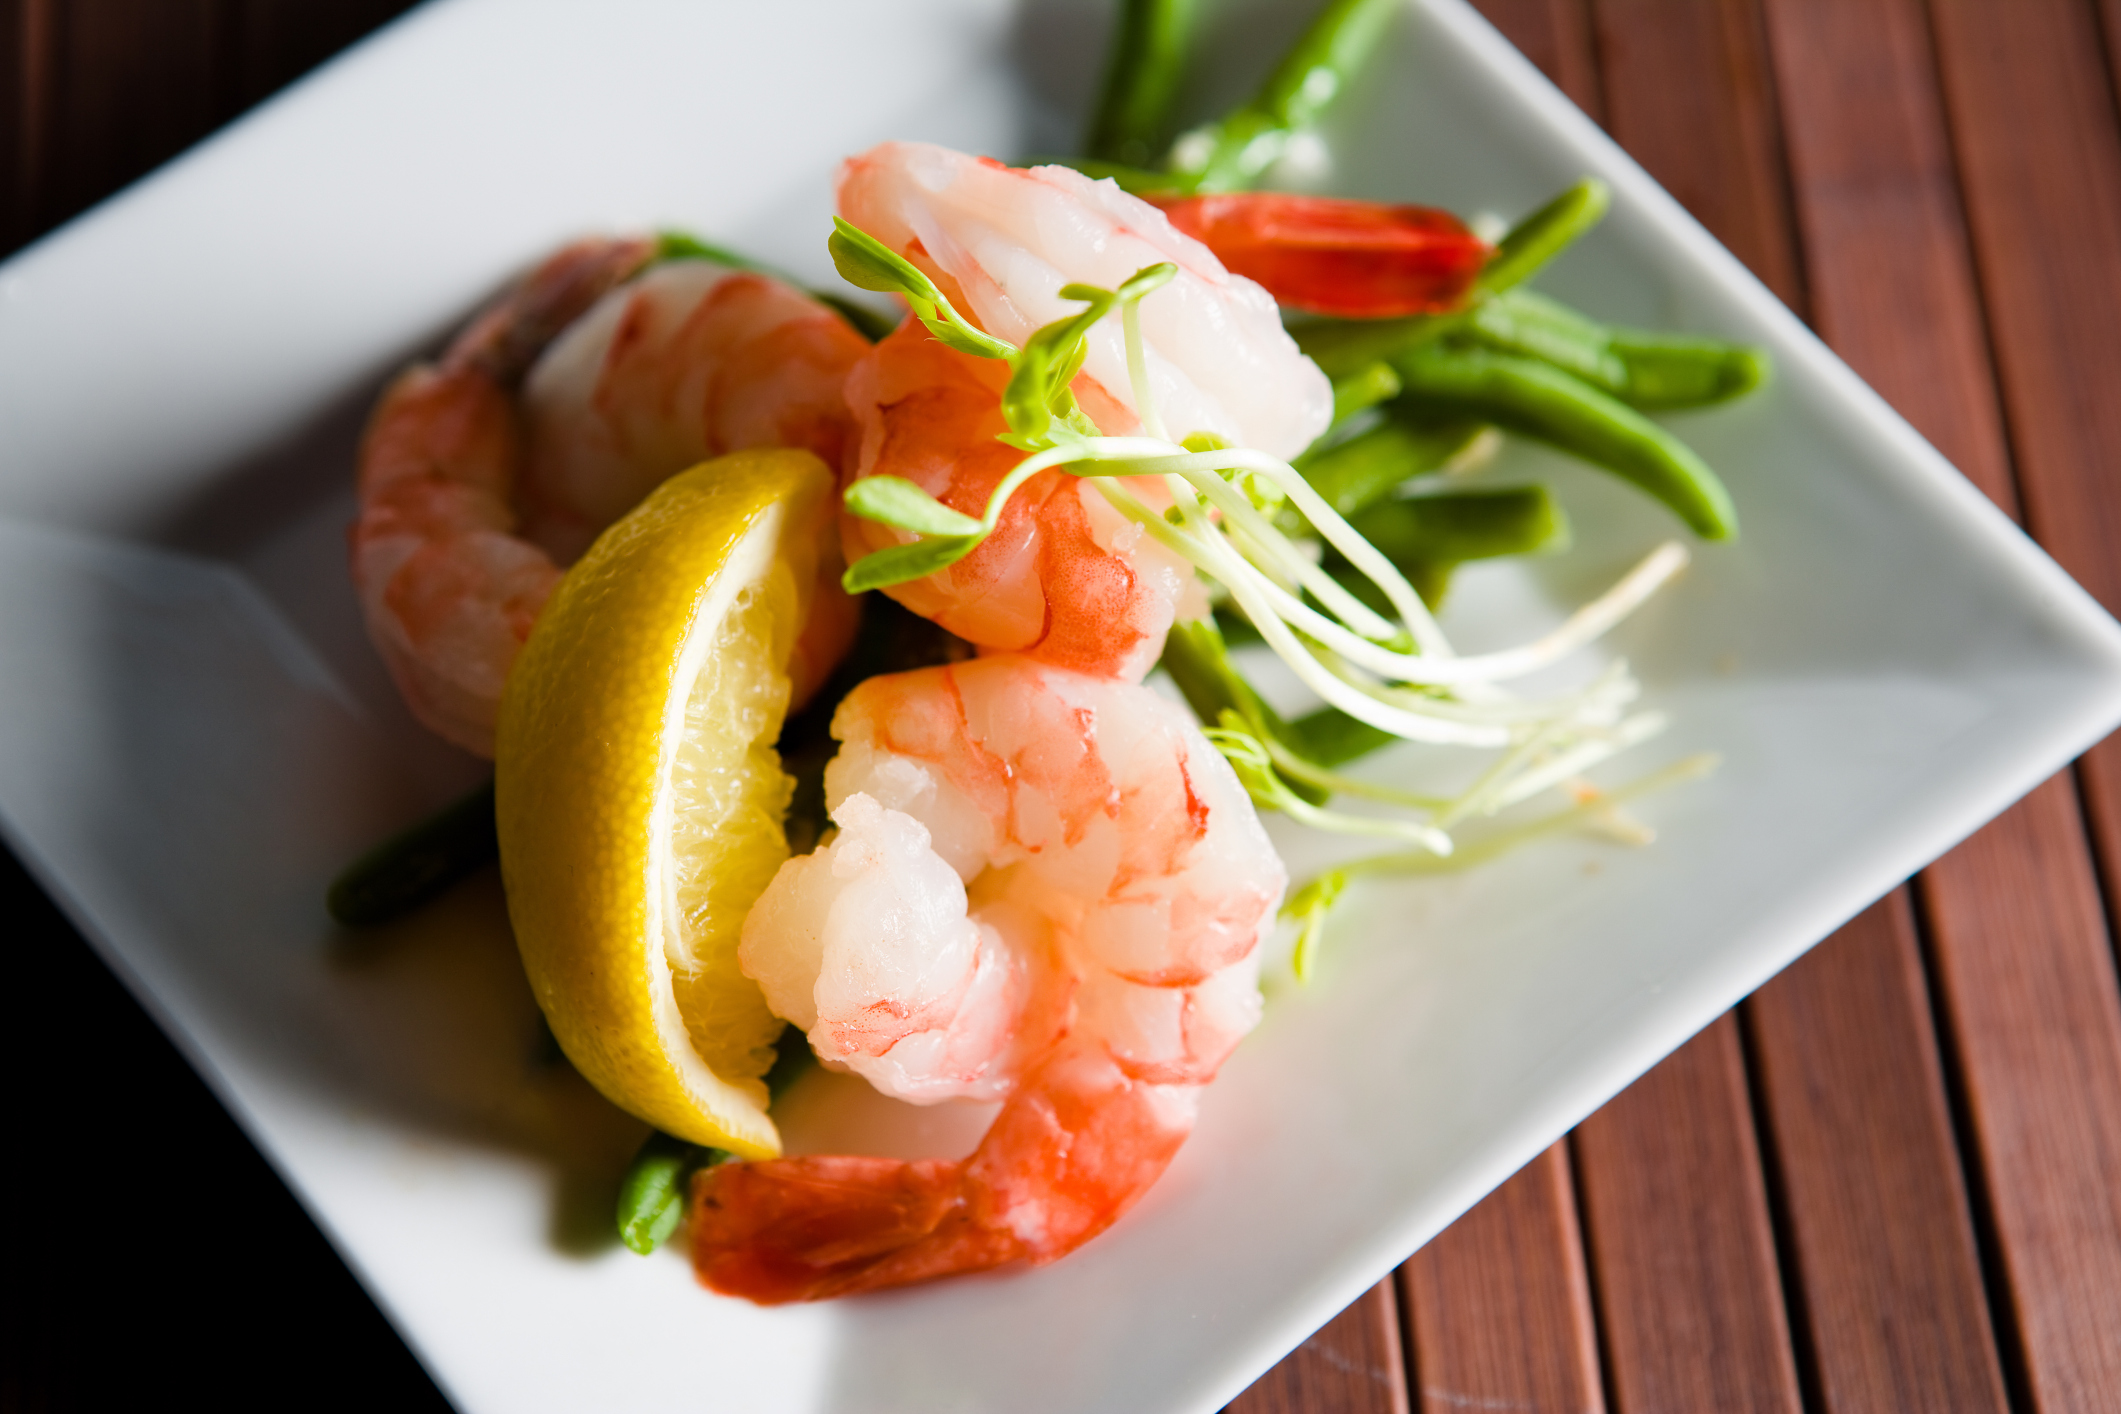 What Is The Effect Of Eating Shrimp On Arthritis?